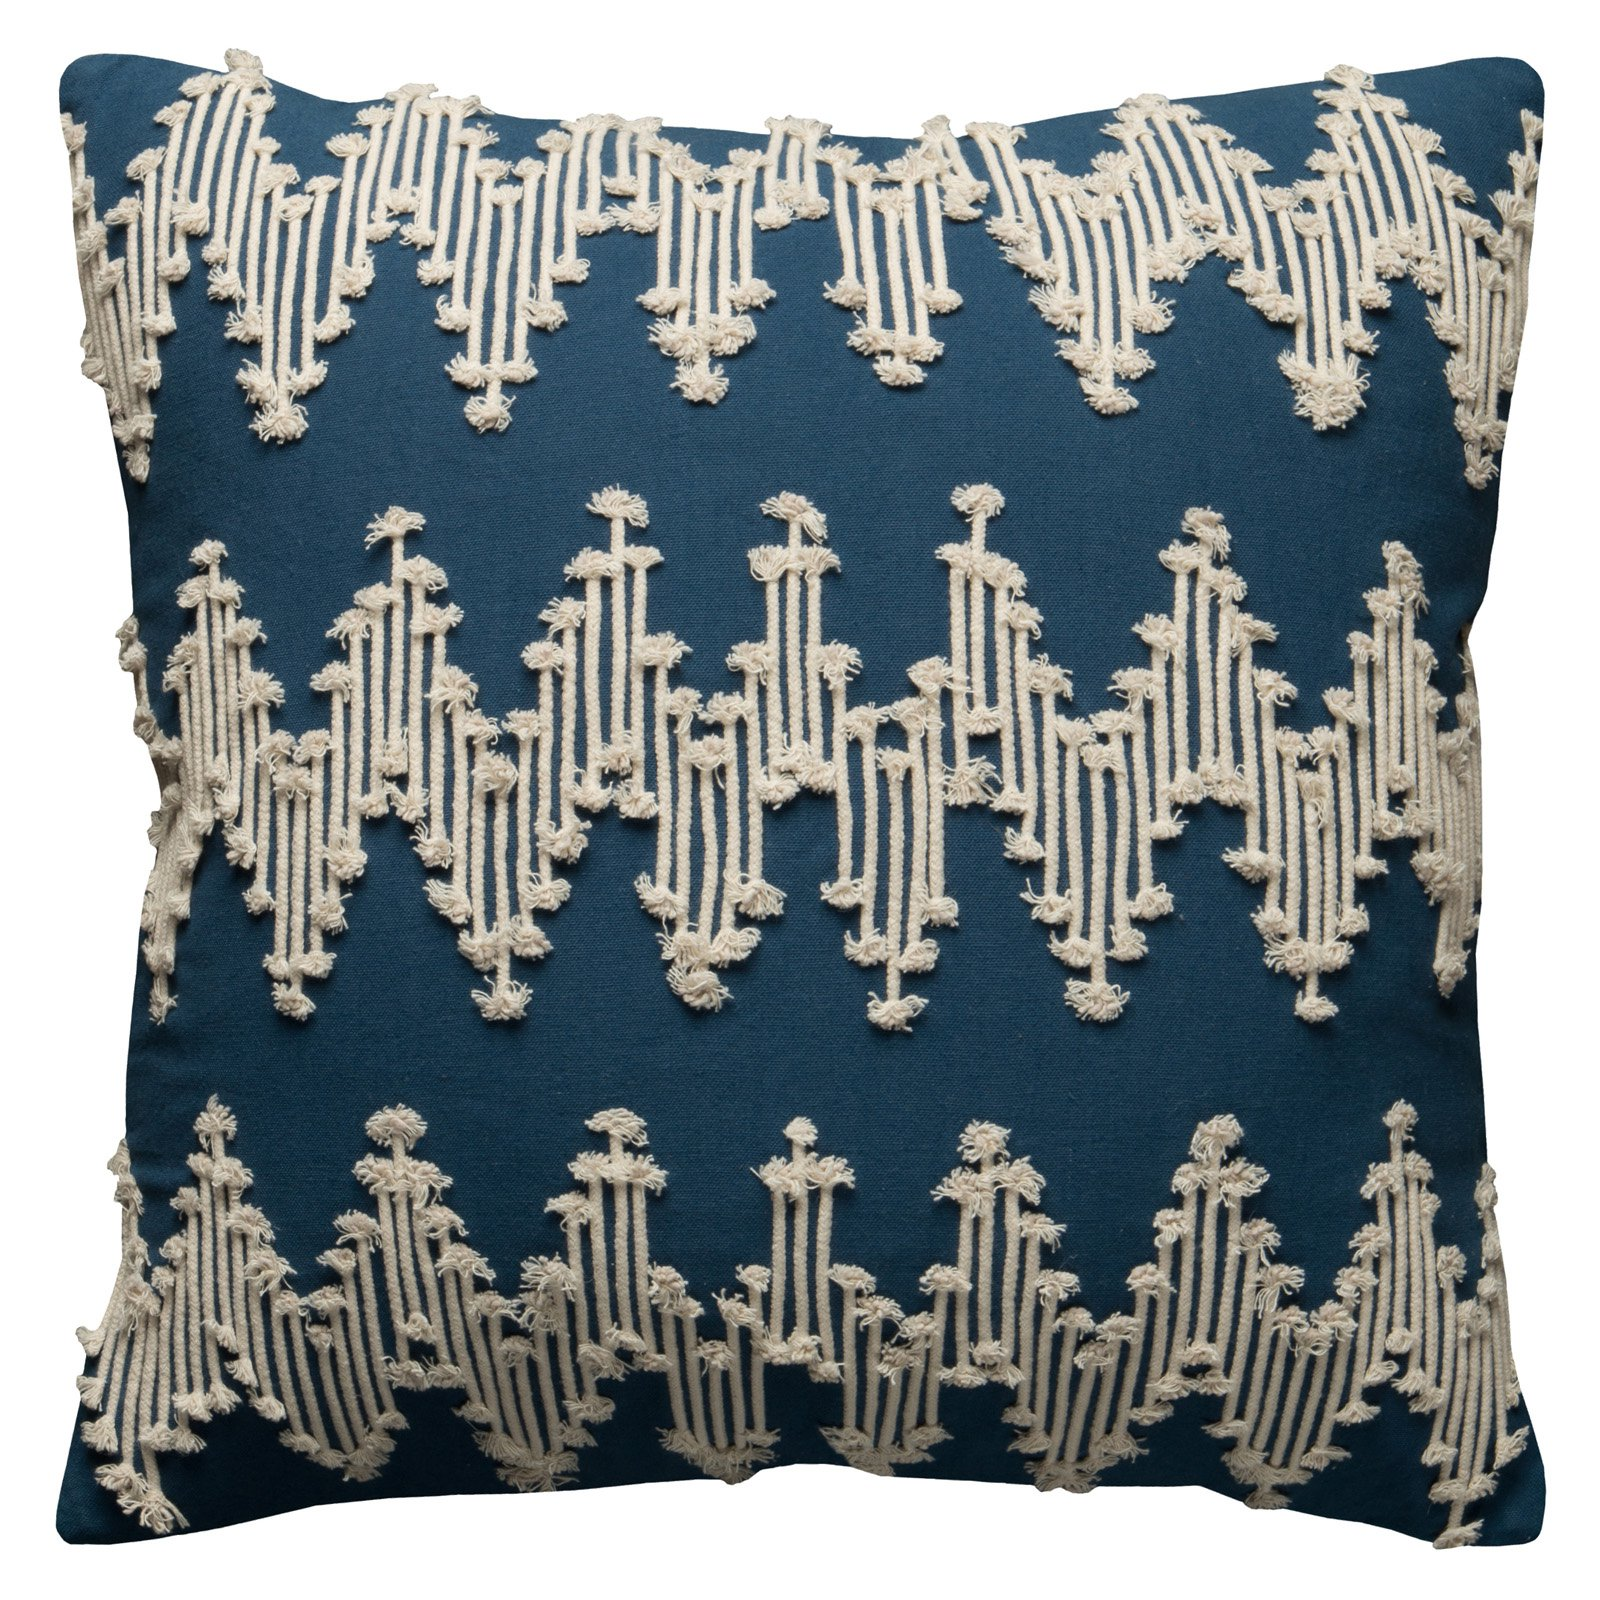 Rizzy Home Chevron Embellished Decorative Throw Pillow with Zipper Closer, 20  x 20